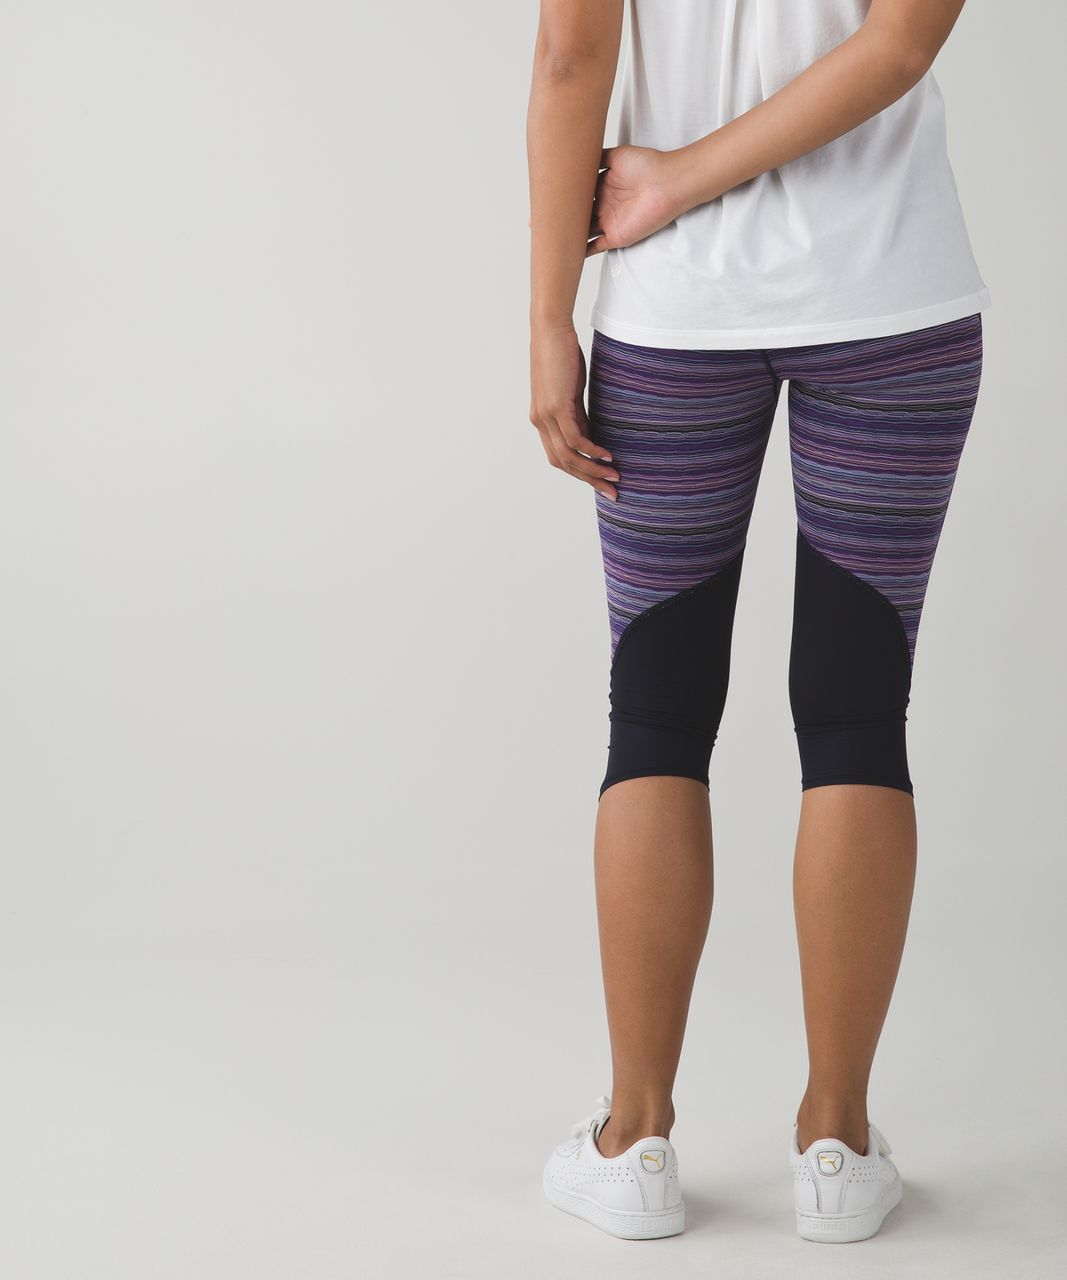 Lululemon Vent It Out Crop - Space Dye Twist Ultra Violet Multi / Naval Blue